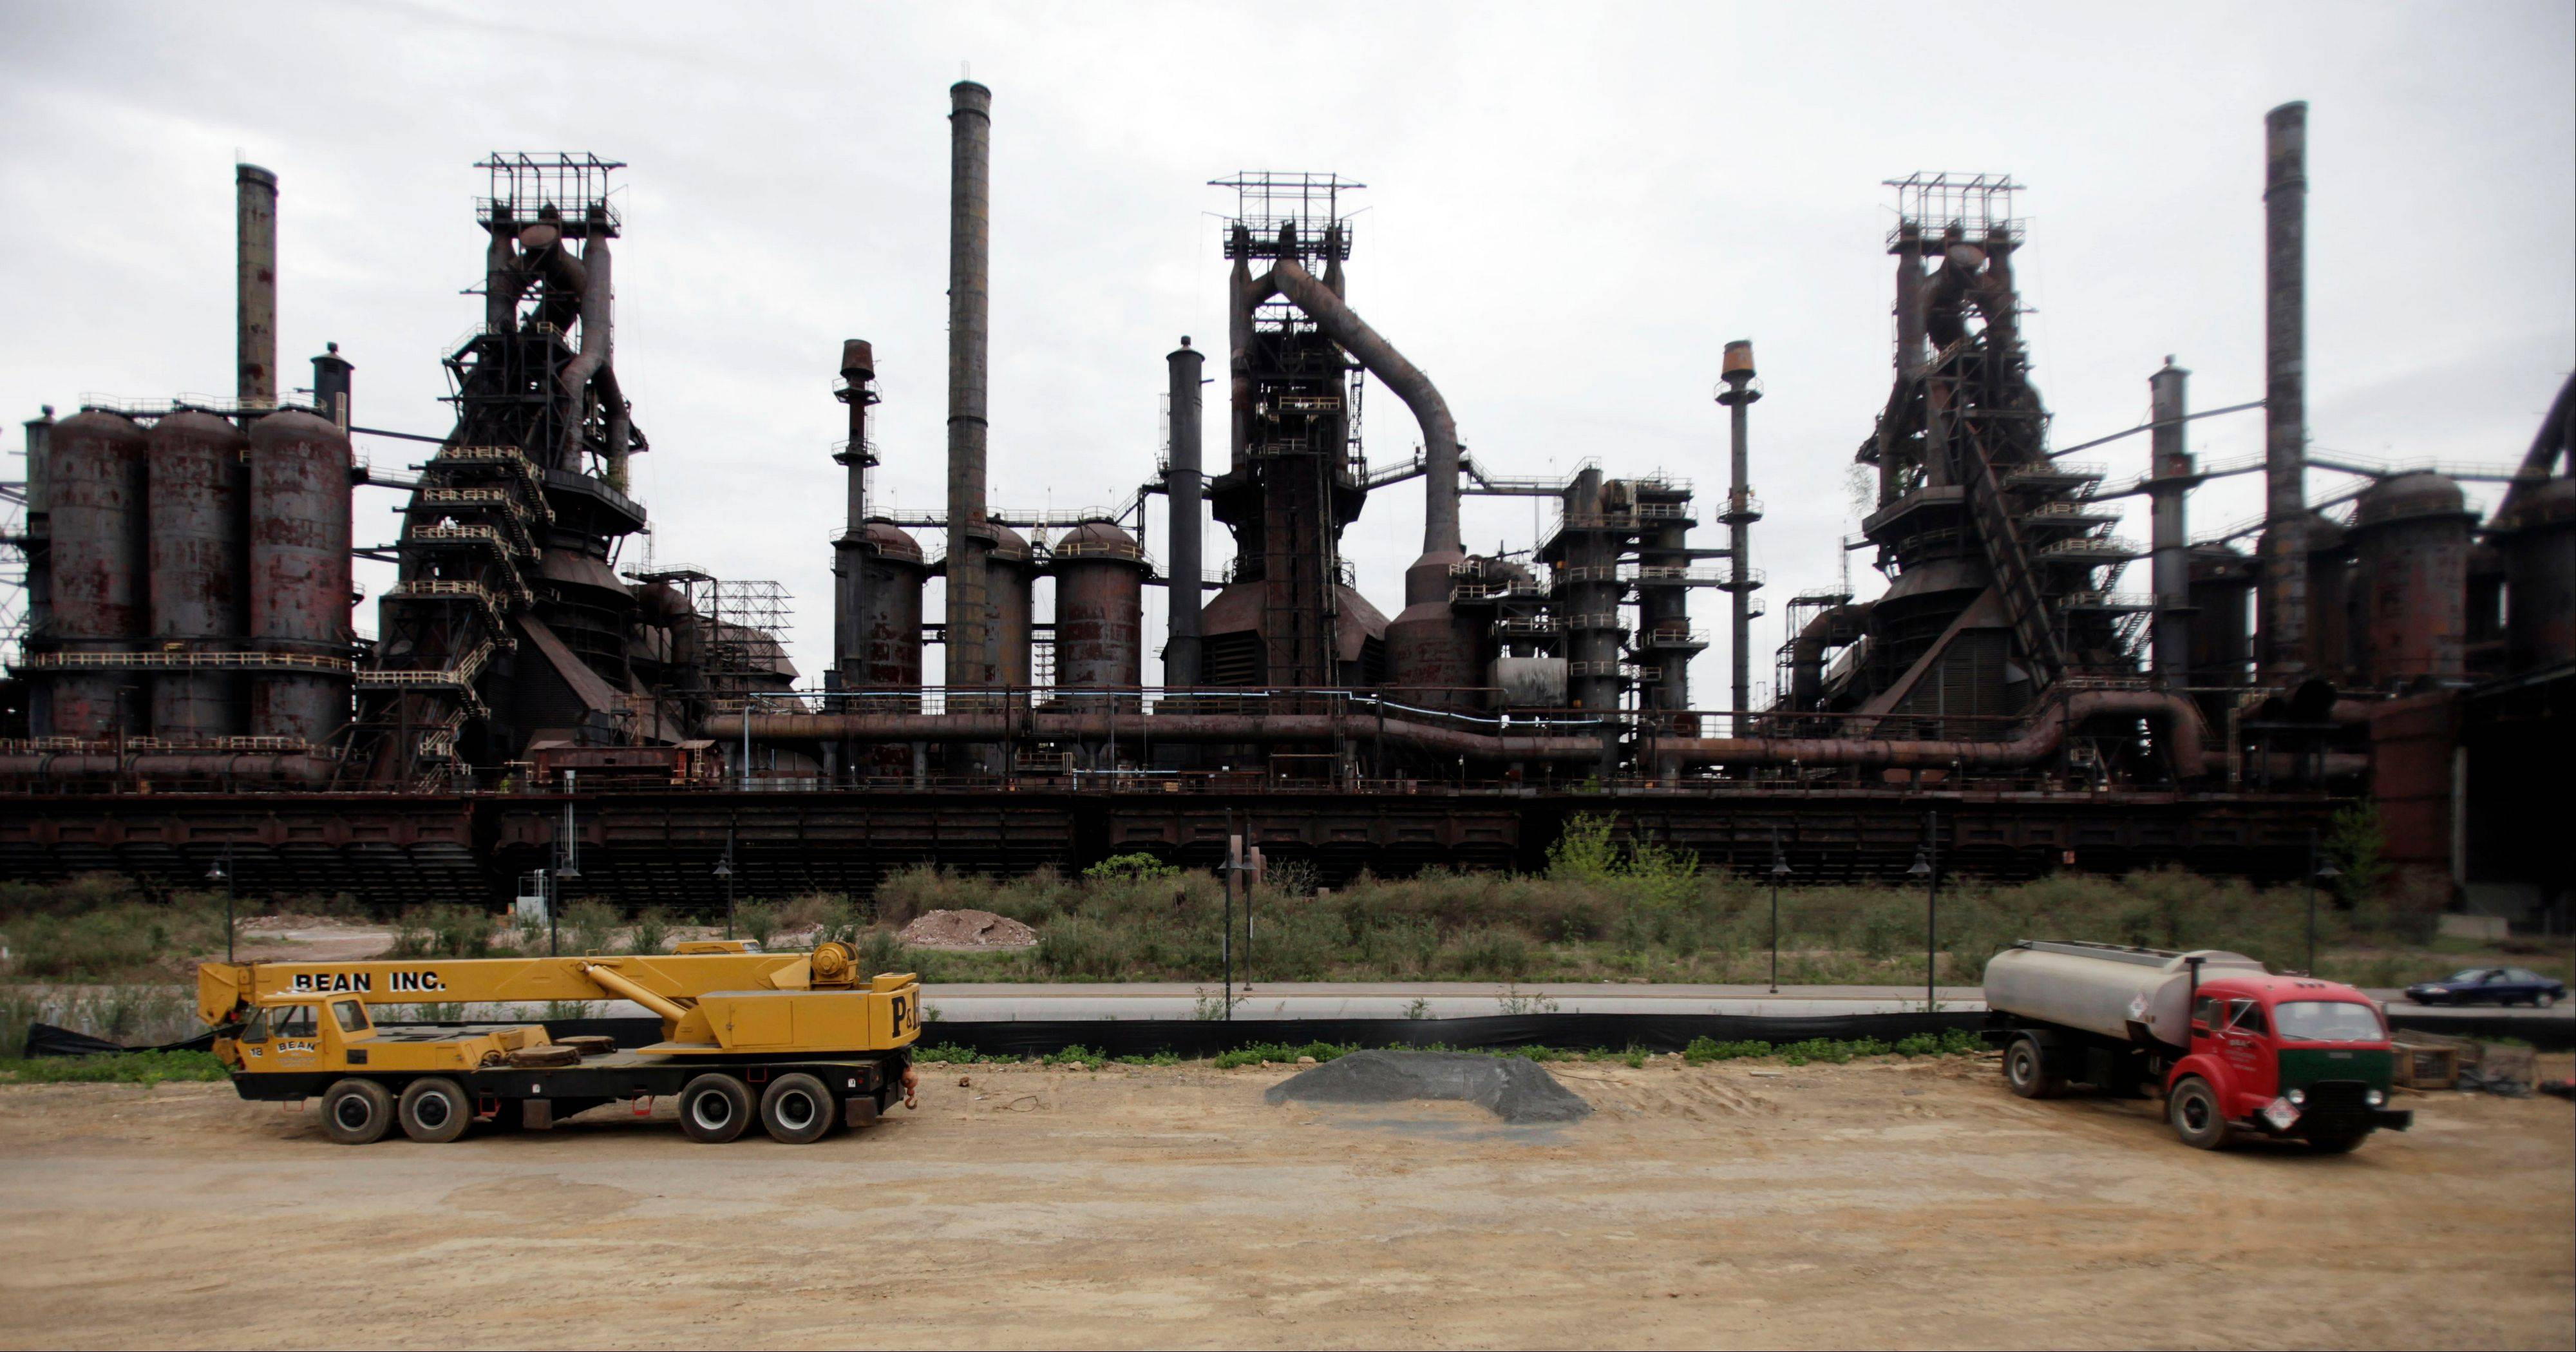 Associated Press/April 30, 2009 Blast furnaces from the historic Bethlehem Steel plant in Bethlehem, Pa. Las Vegas Sands Corporation's Sands Casino Resort Bethlehem is located on a portion the former site of the Bethlehem Steel plant.